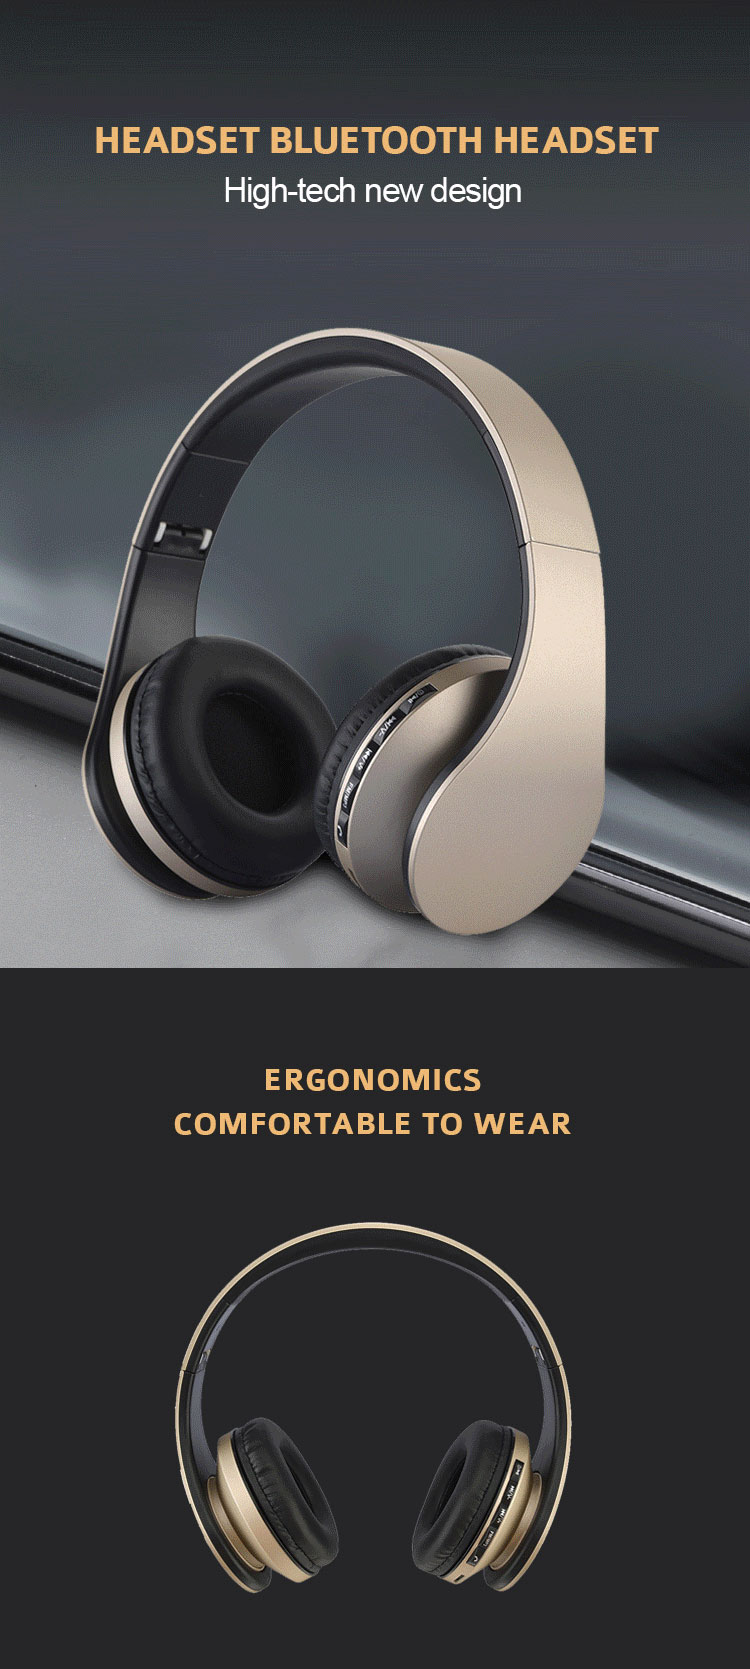 Wired Gaming Headset 7.1 Ear Phone Glowing Earphone Gold Earbuds